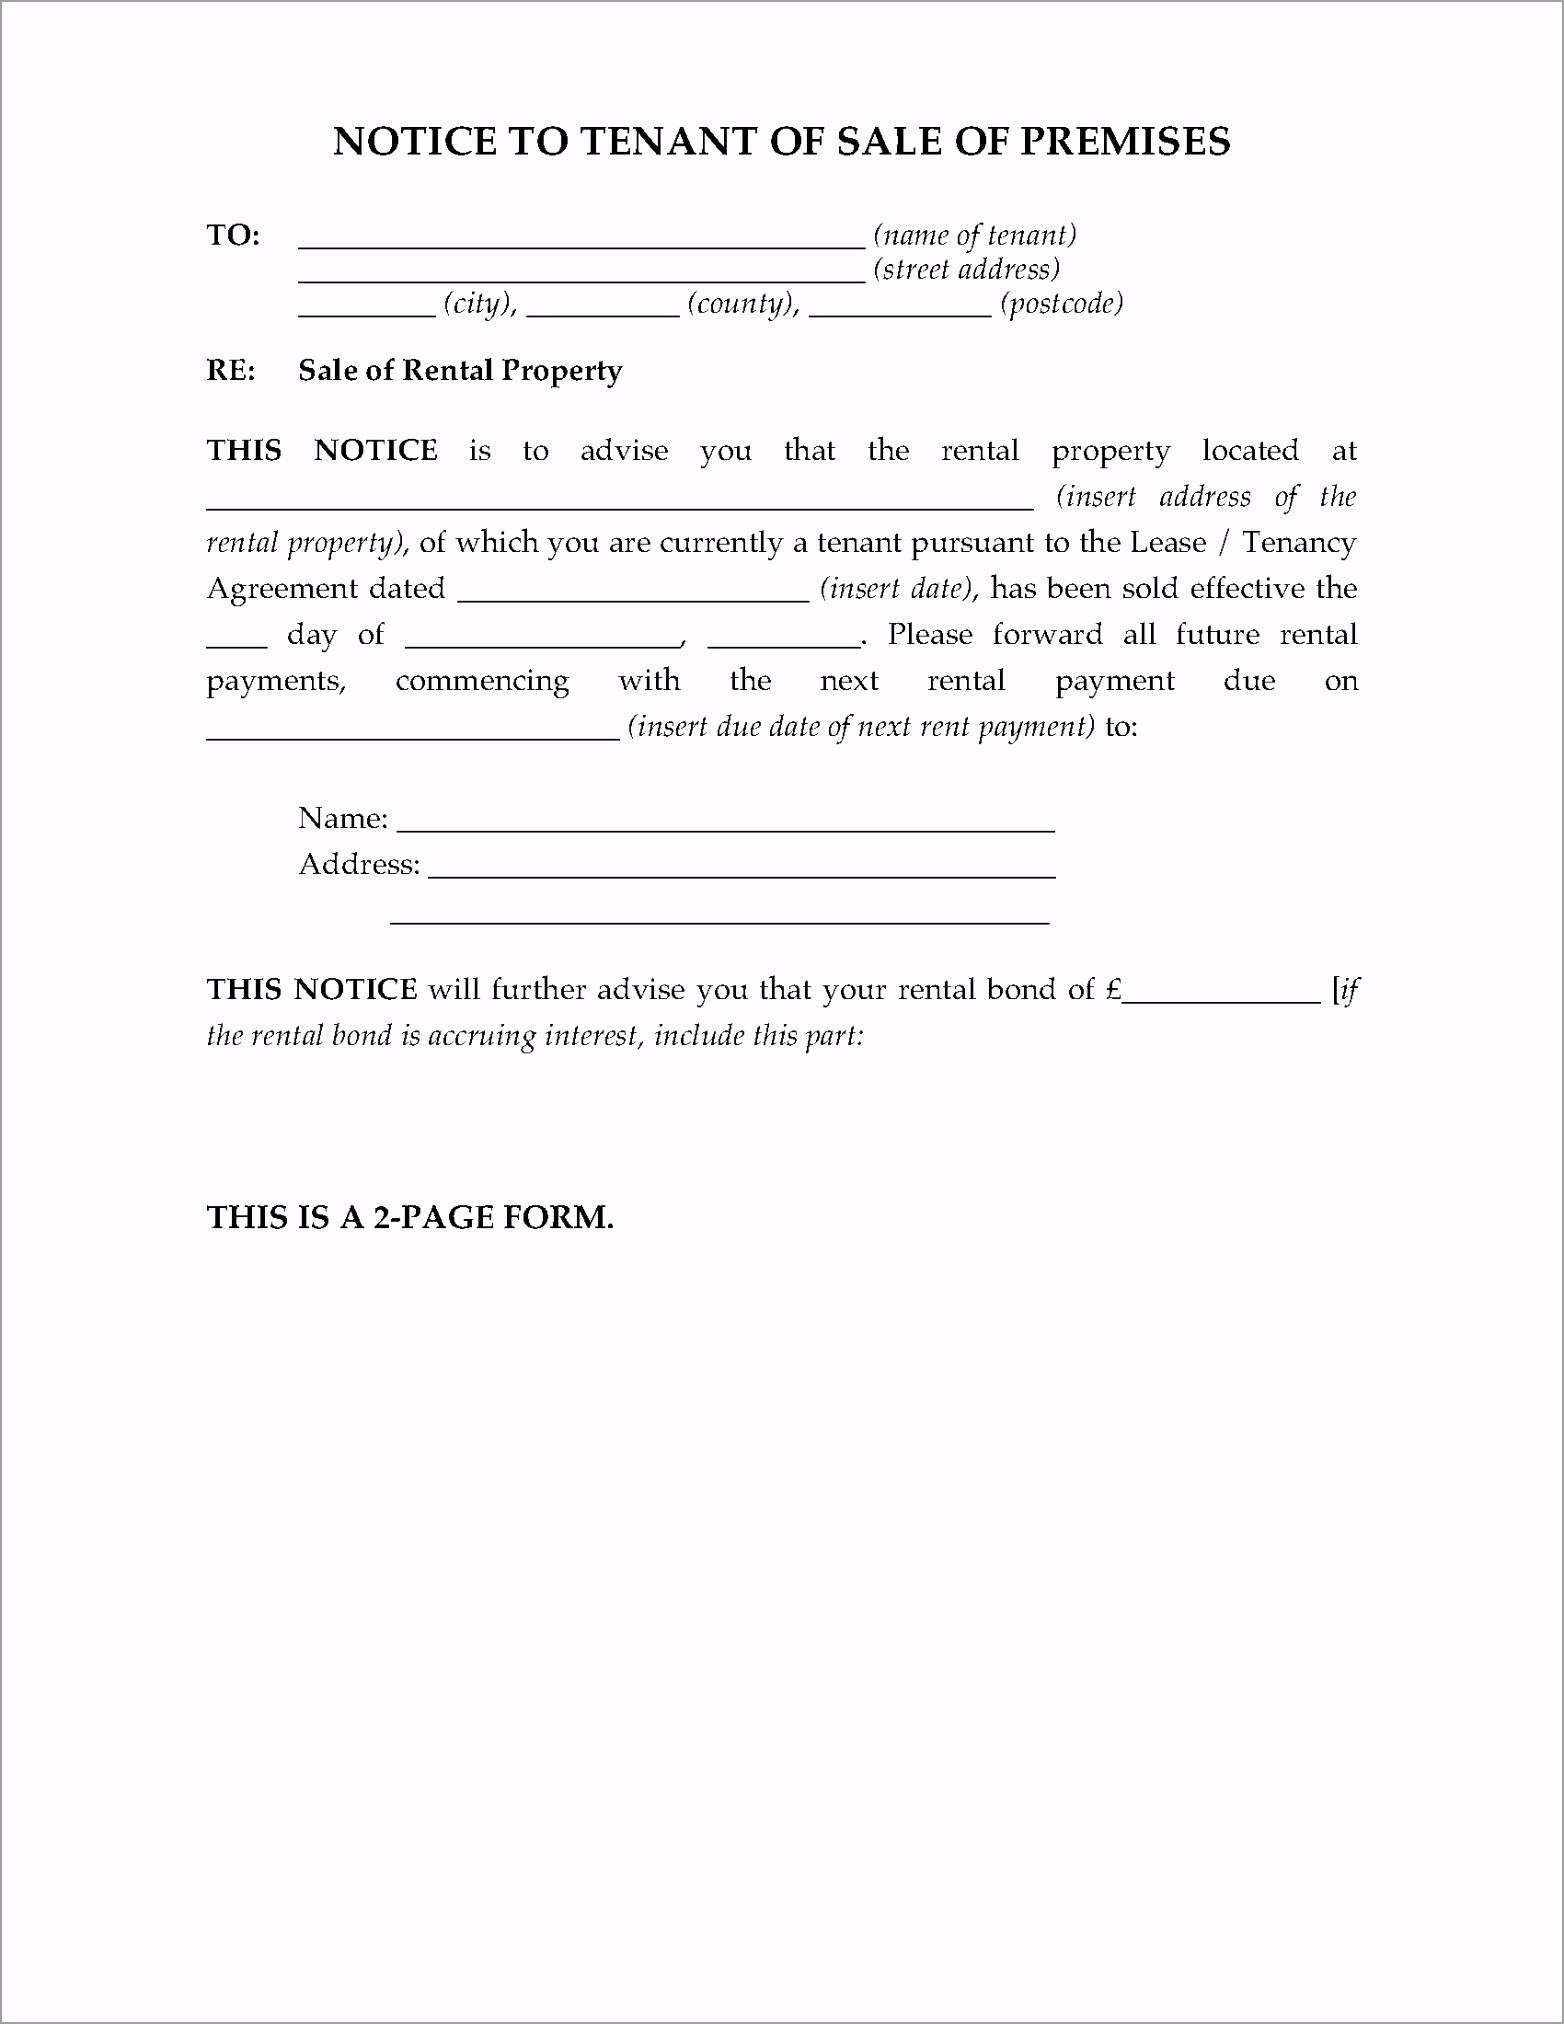 application to refer notice proposing different terms to tribunal england yrvit